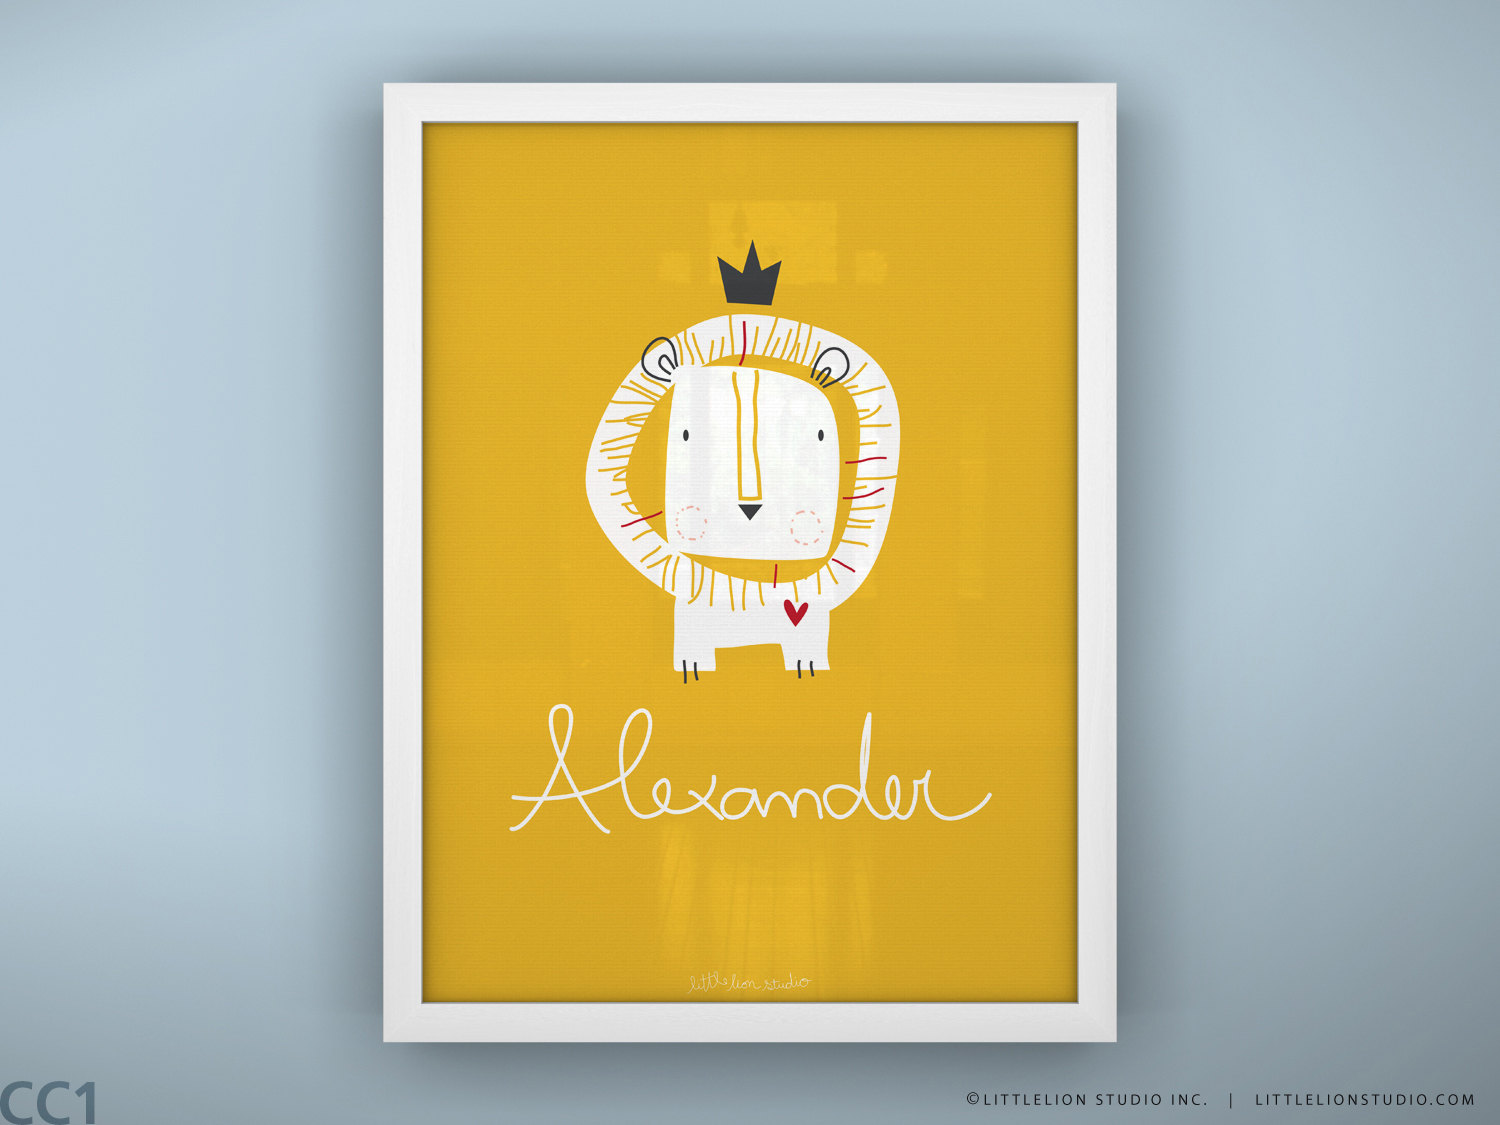 Prints For Kids Rooms : Commemorate a birth with this sweet print from from U.S based Ink ...